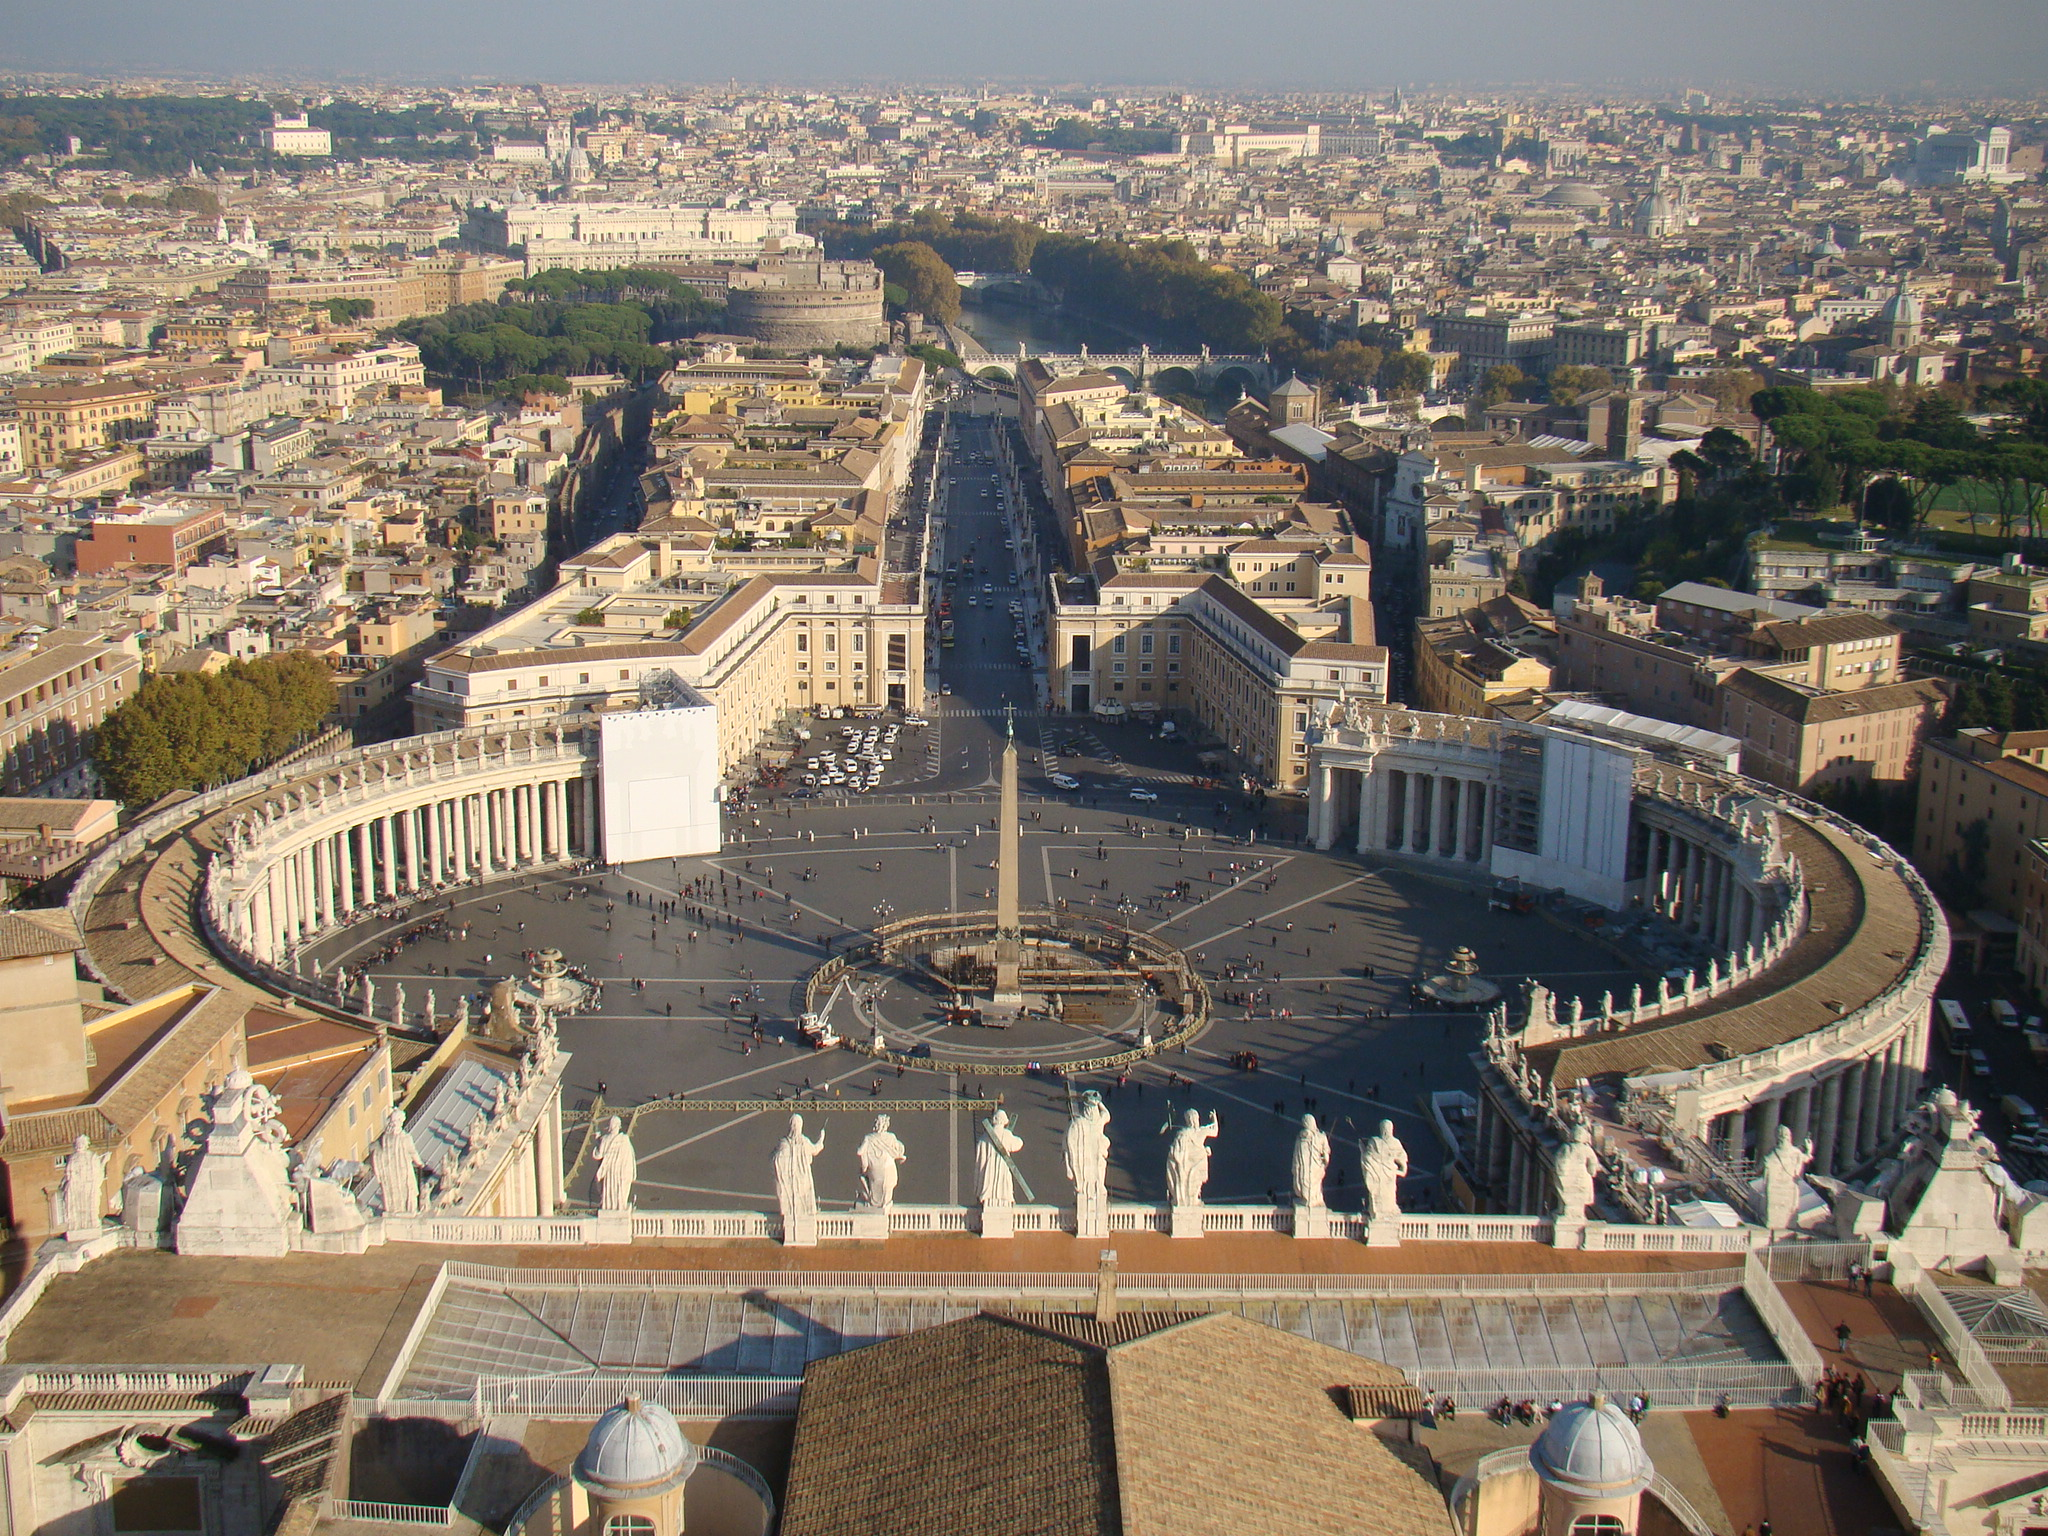 Roma vista do alto do Vaticano